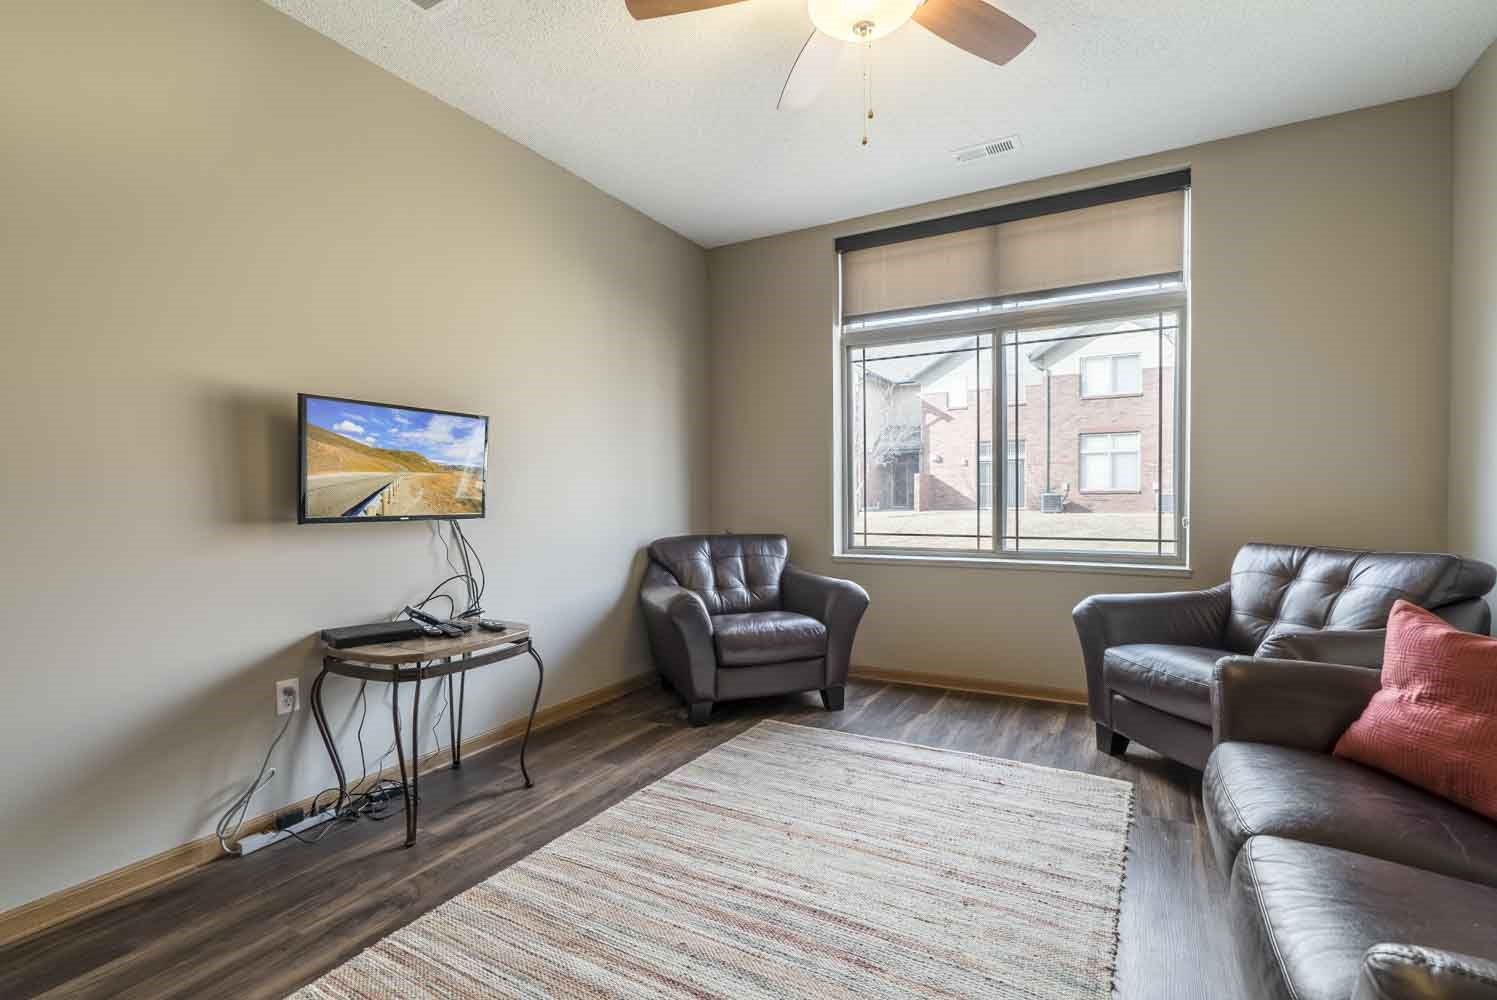 Living room in a two-bedroom townhome at Southwind Villas in southwest Omaha in La Vista, NE, 68128